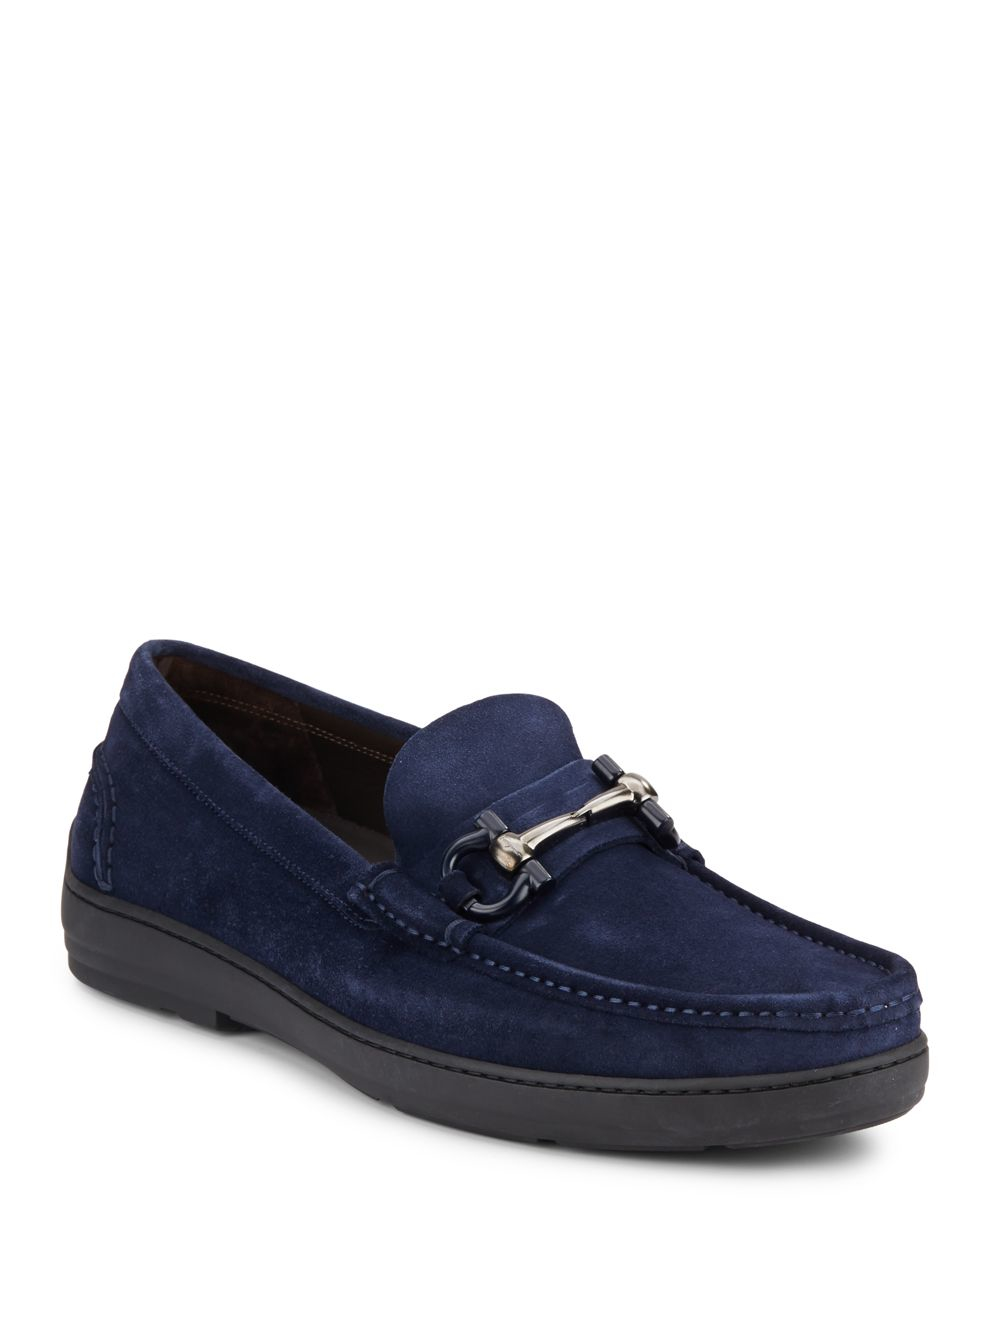 - suede loafers Berwick moccasin with a classic and refined design. This high-quality index model and craftsmanship excellence is characterized by Goodyear processing with a sinuous silhouette with a rounded tip and a precious upper in pure suede and embellished with elegant laces in tone-on-tone relief with delicate front tassels.